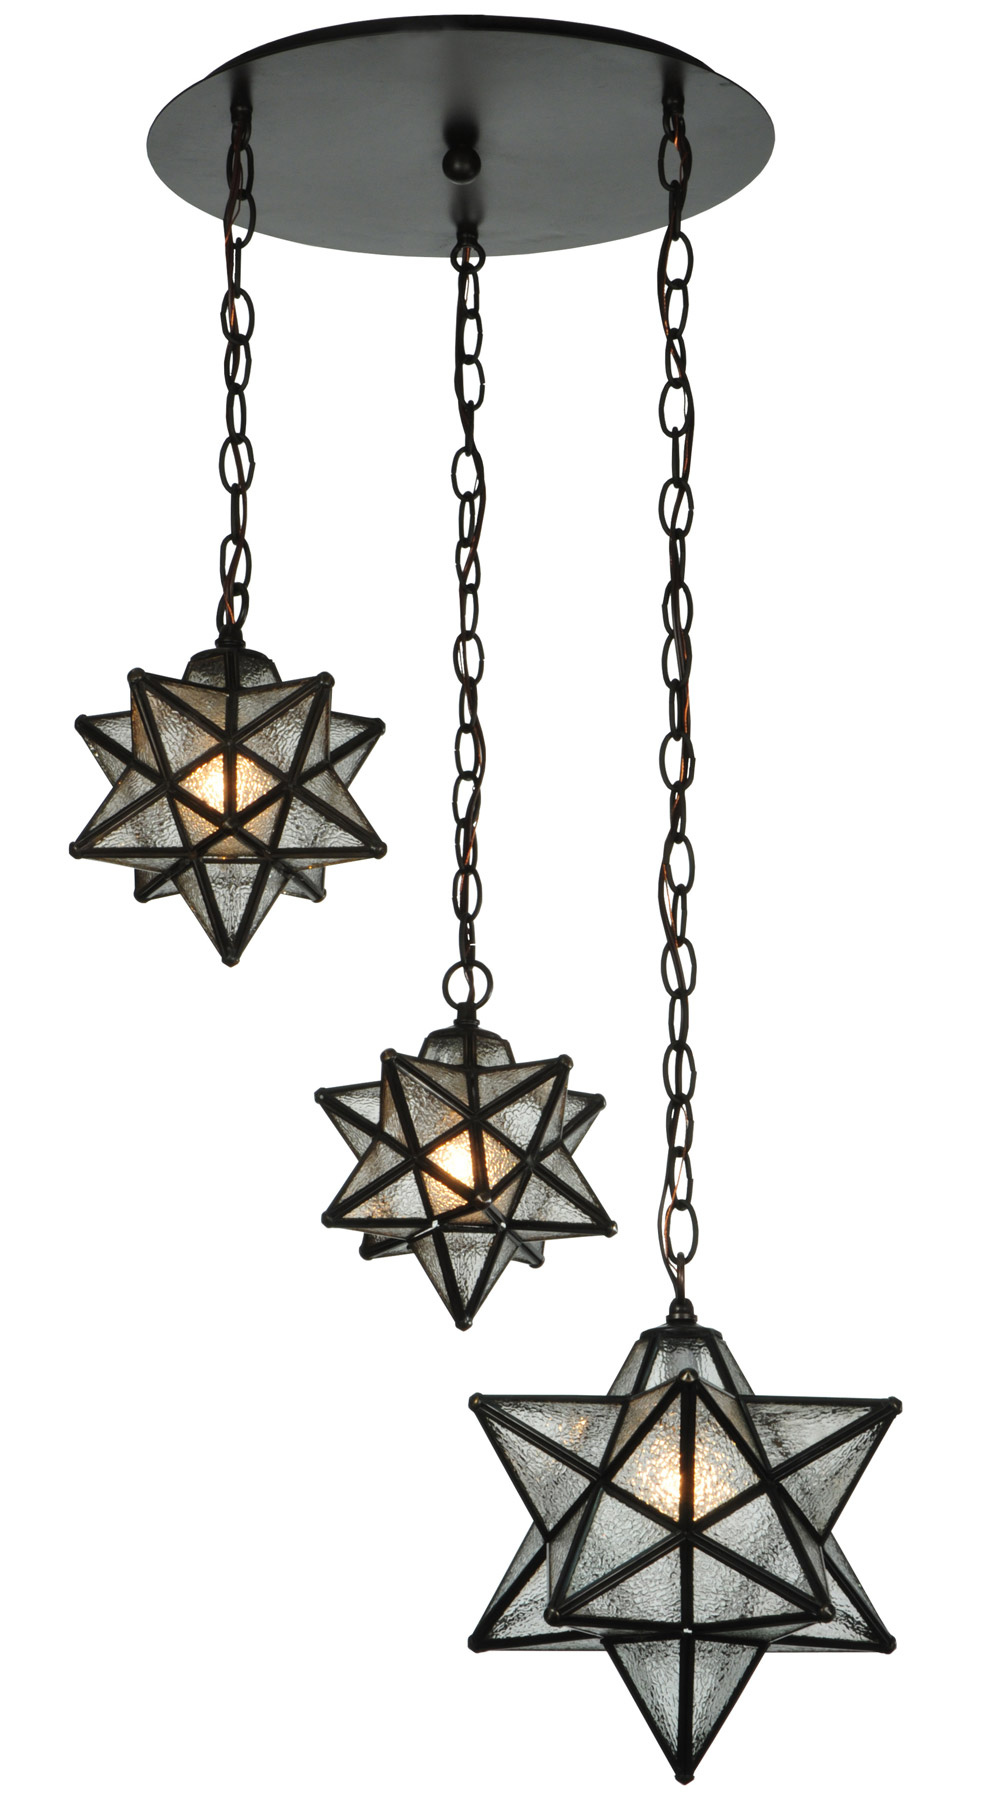 100 star pendant lights moroccan punched metal pendant ligh